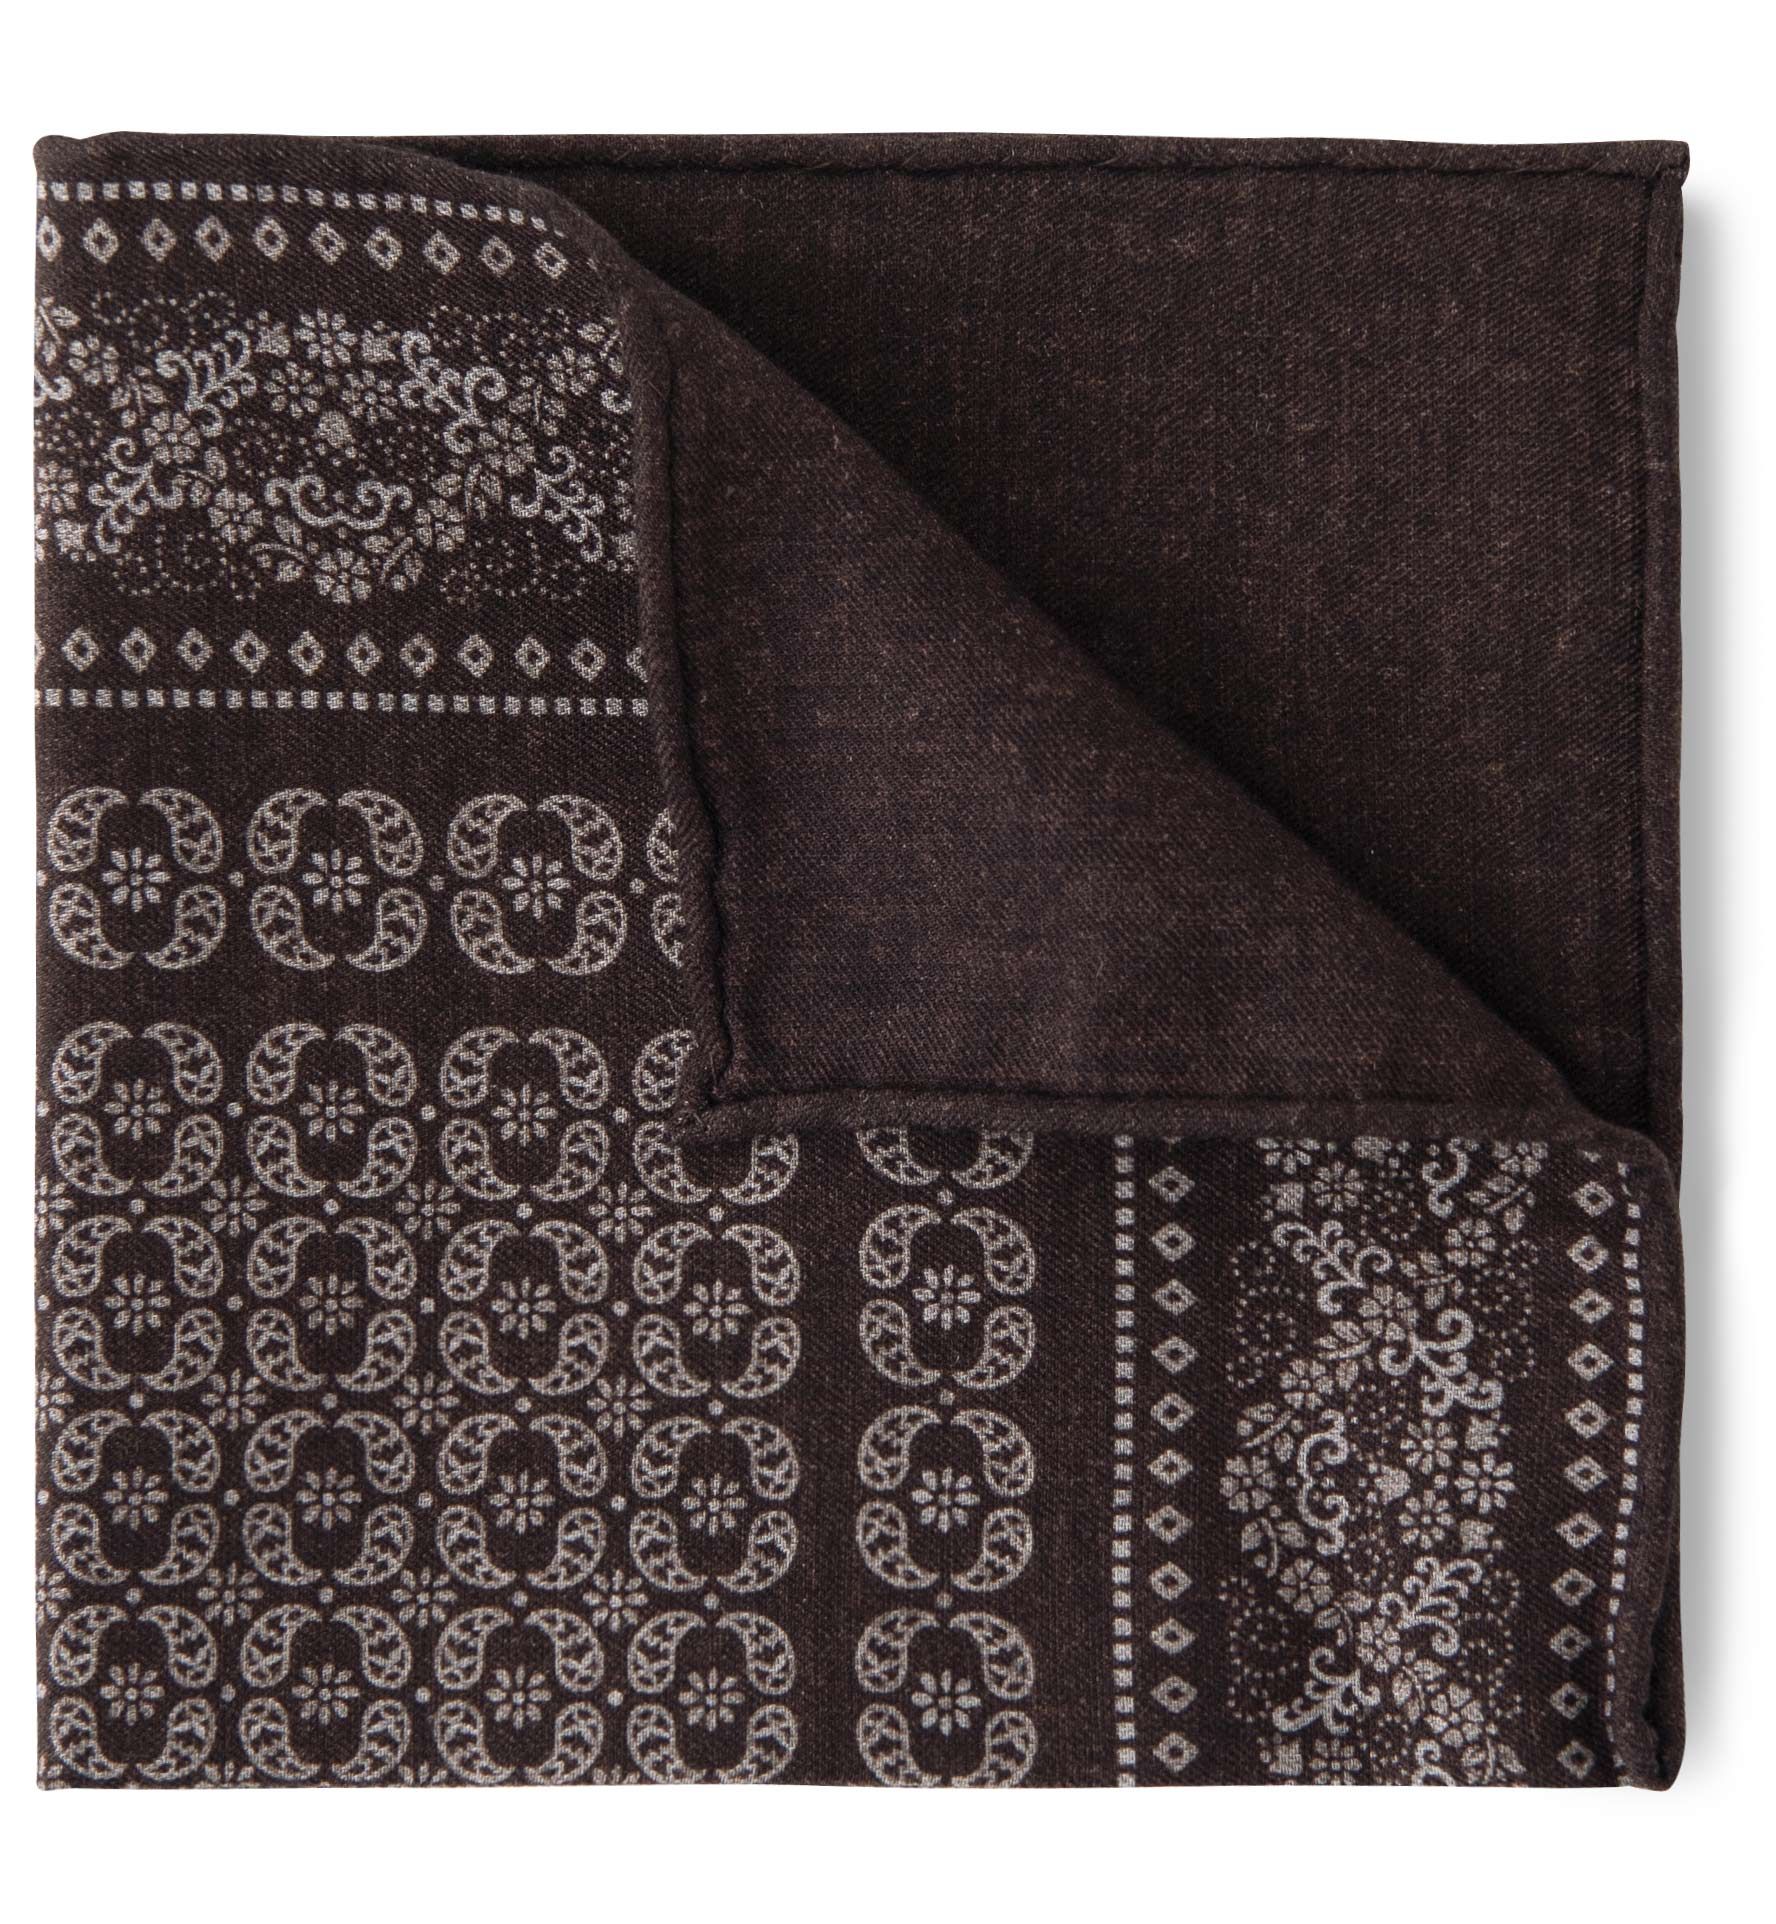 Zoom Image of Dark Brown Floral Print Pocket Square